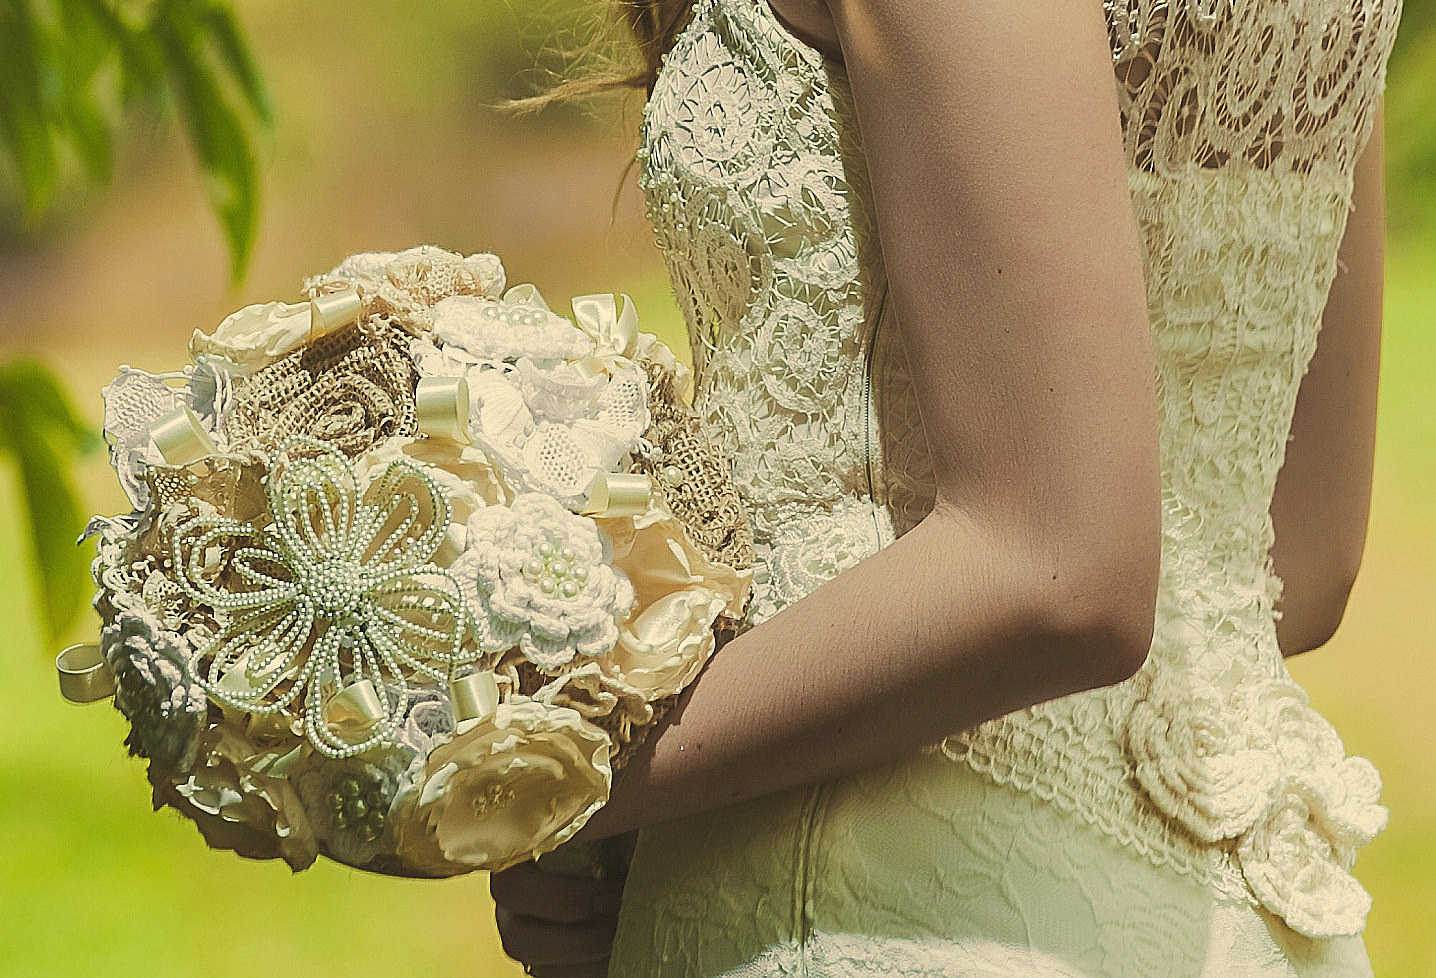 Crochet Flower Bouquet Patterns : crochet lace and bauble wedding bouquet OneWed.com